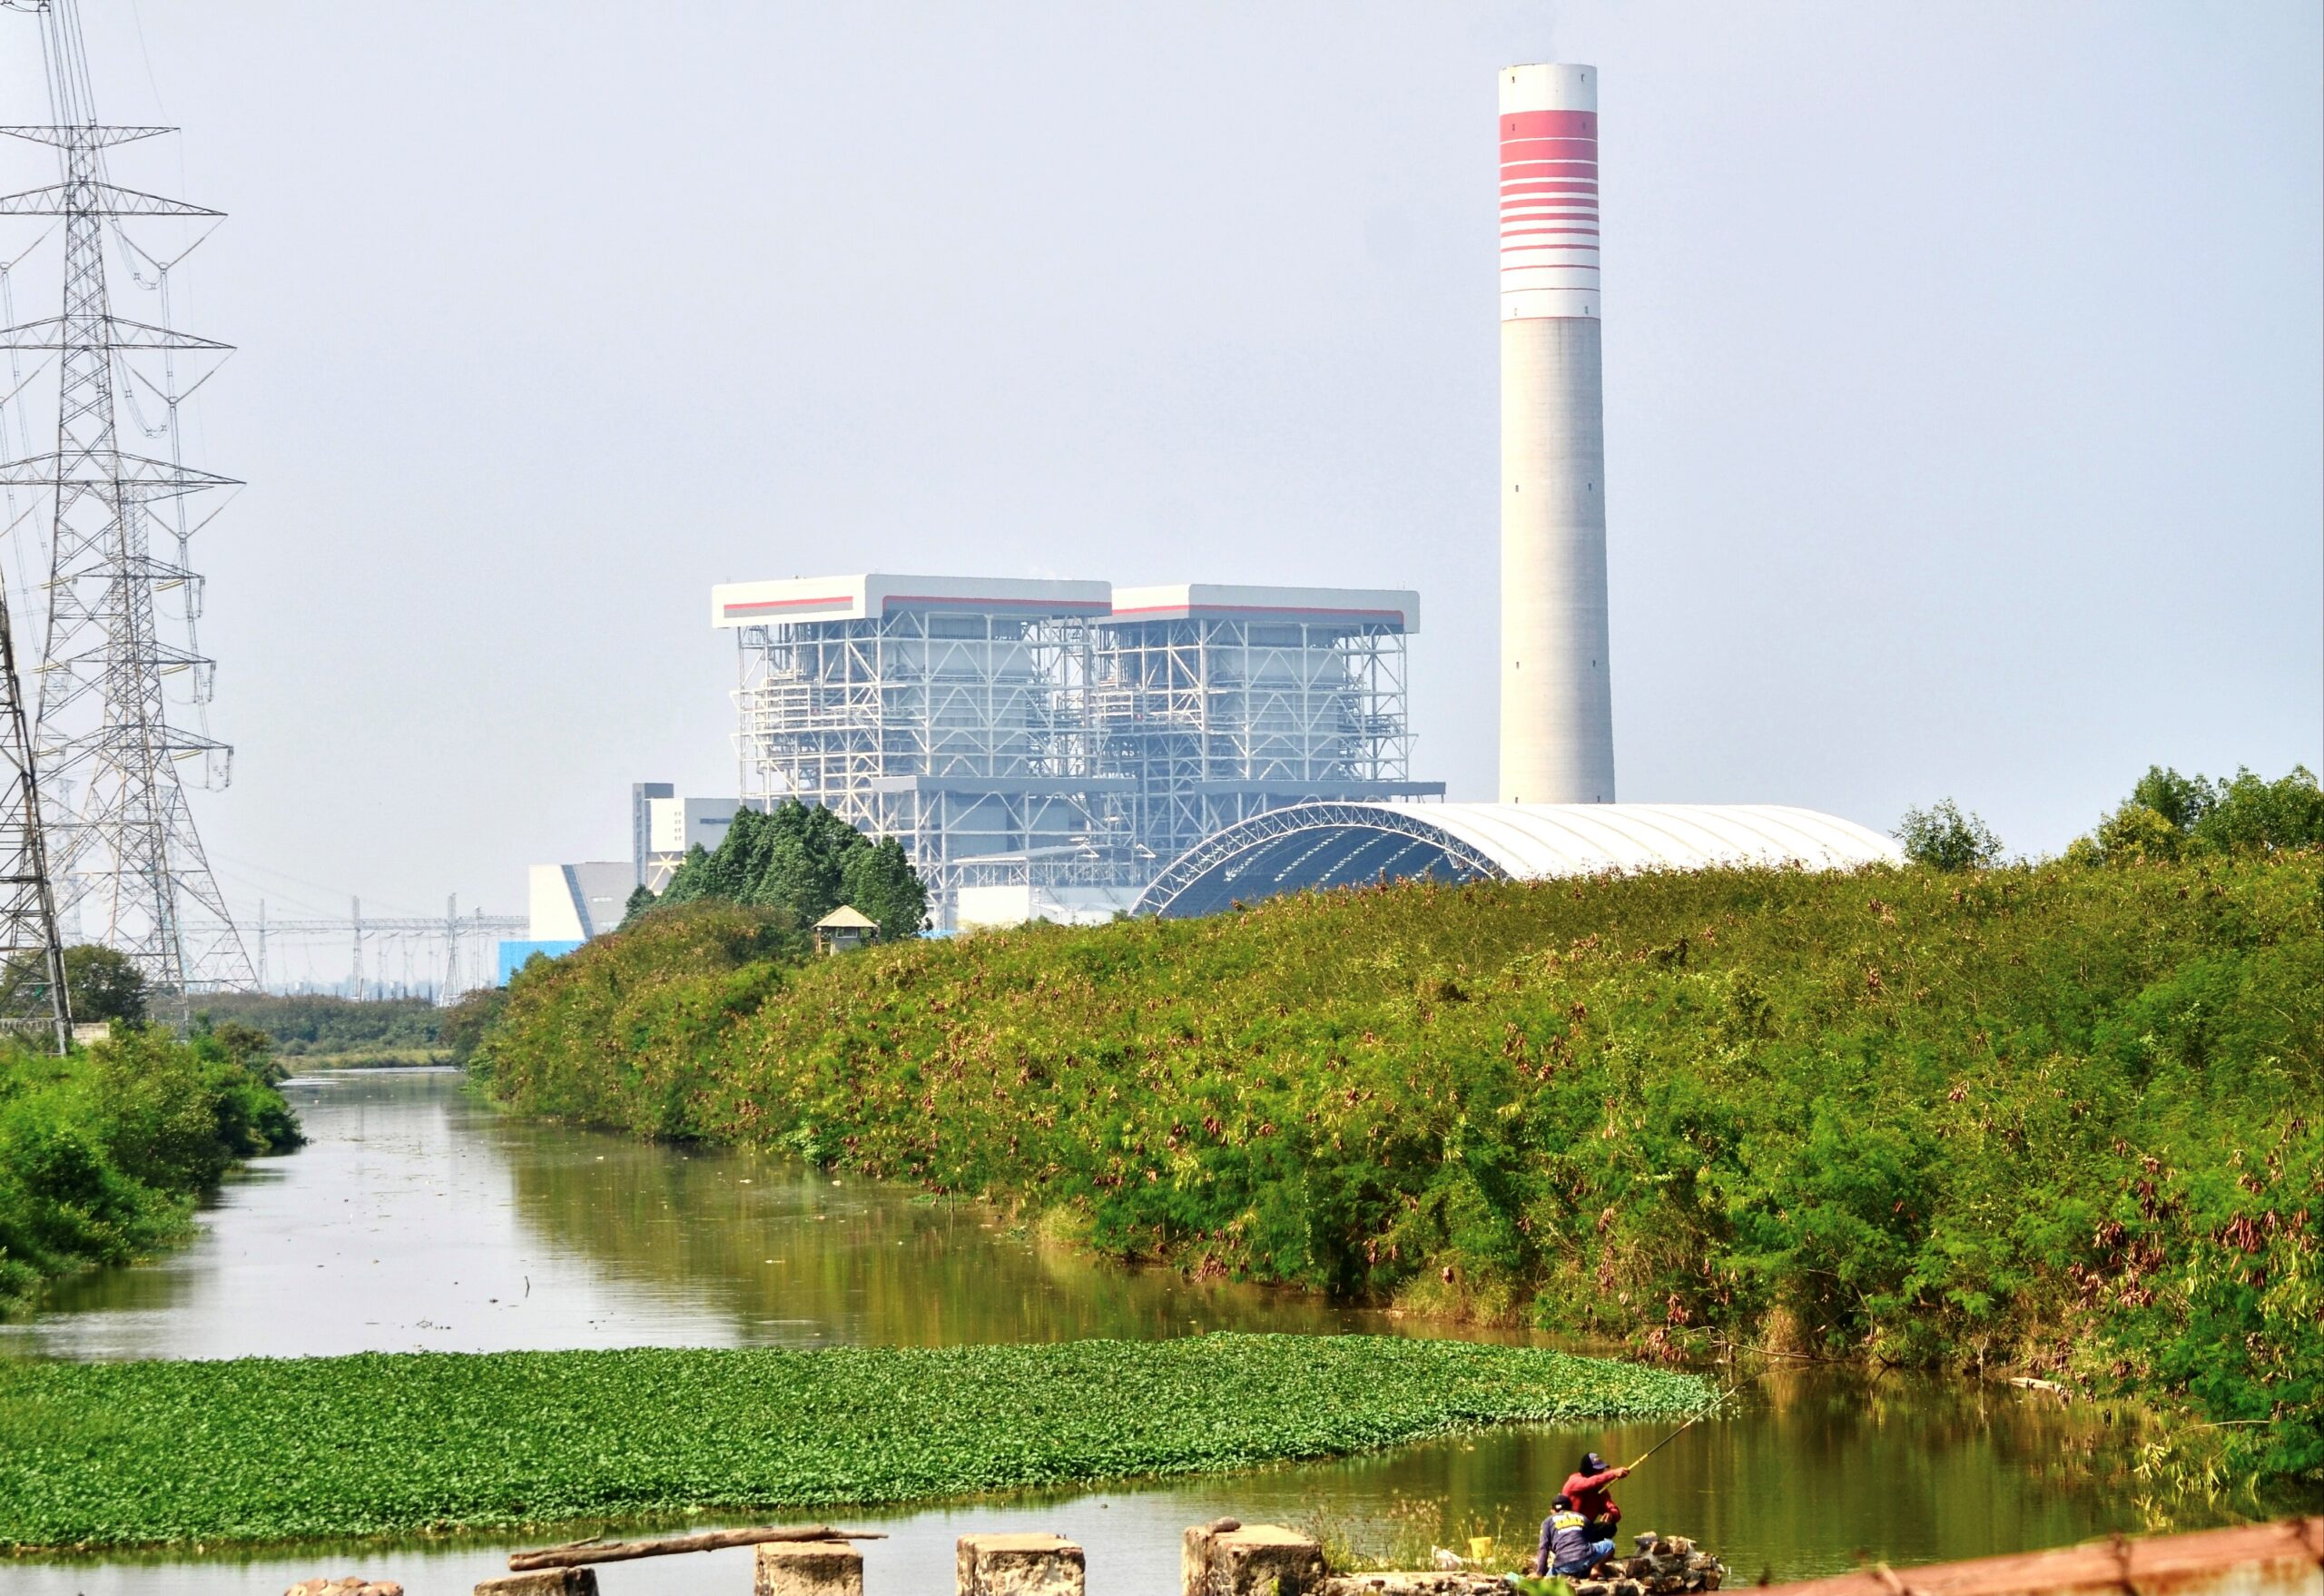 <i>Ronald Siagian/AFP/Getty Images</i><br/>The Java 7 power plant in Serang